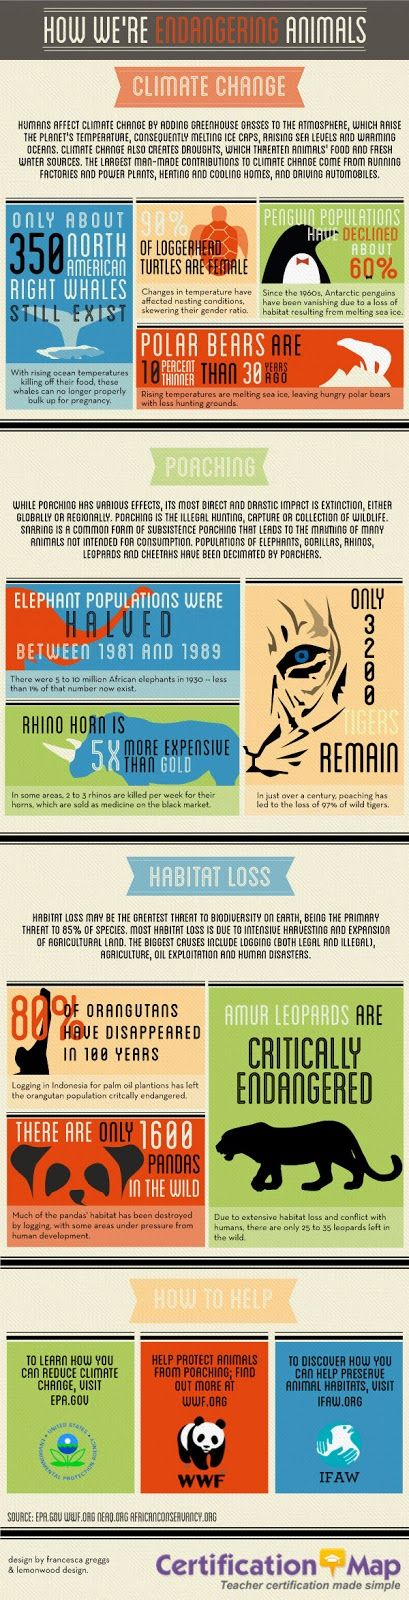 Here's an infographic on the ways animals are being endangered by human activity.